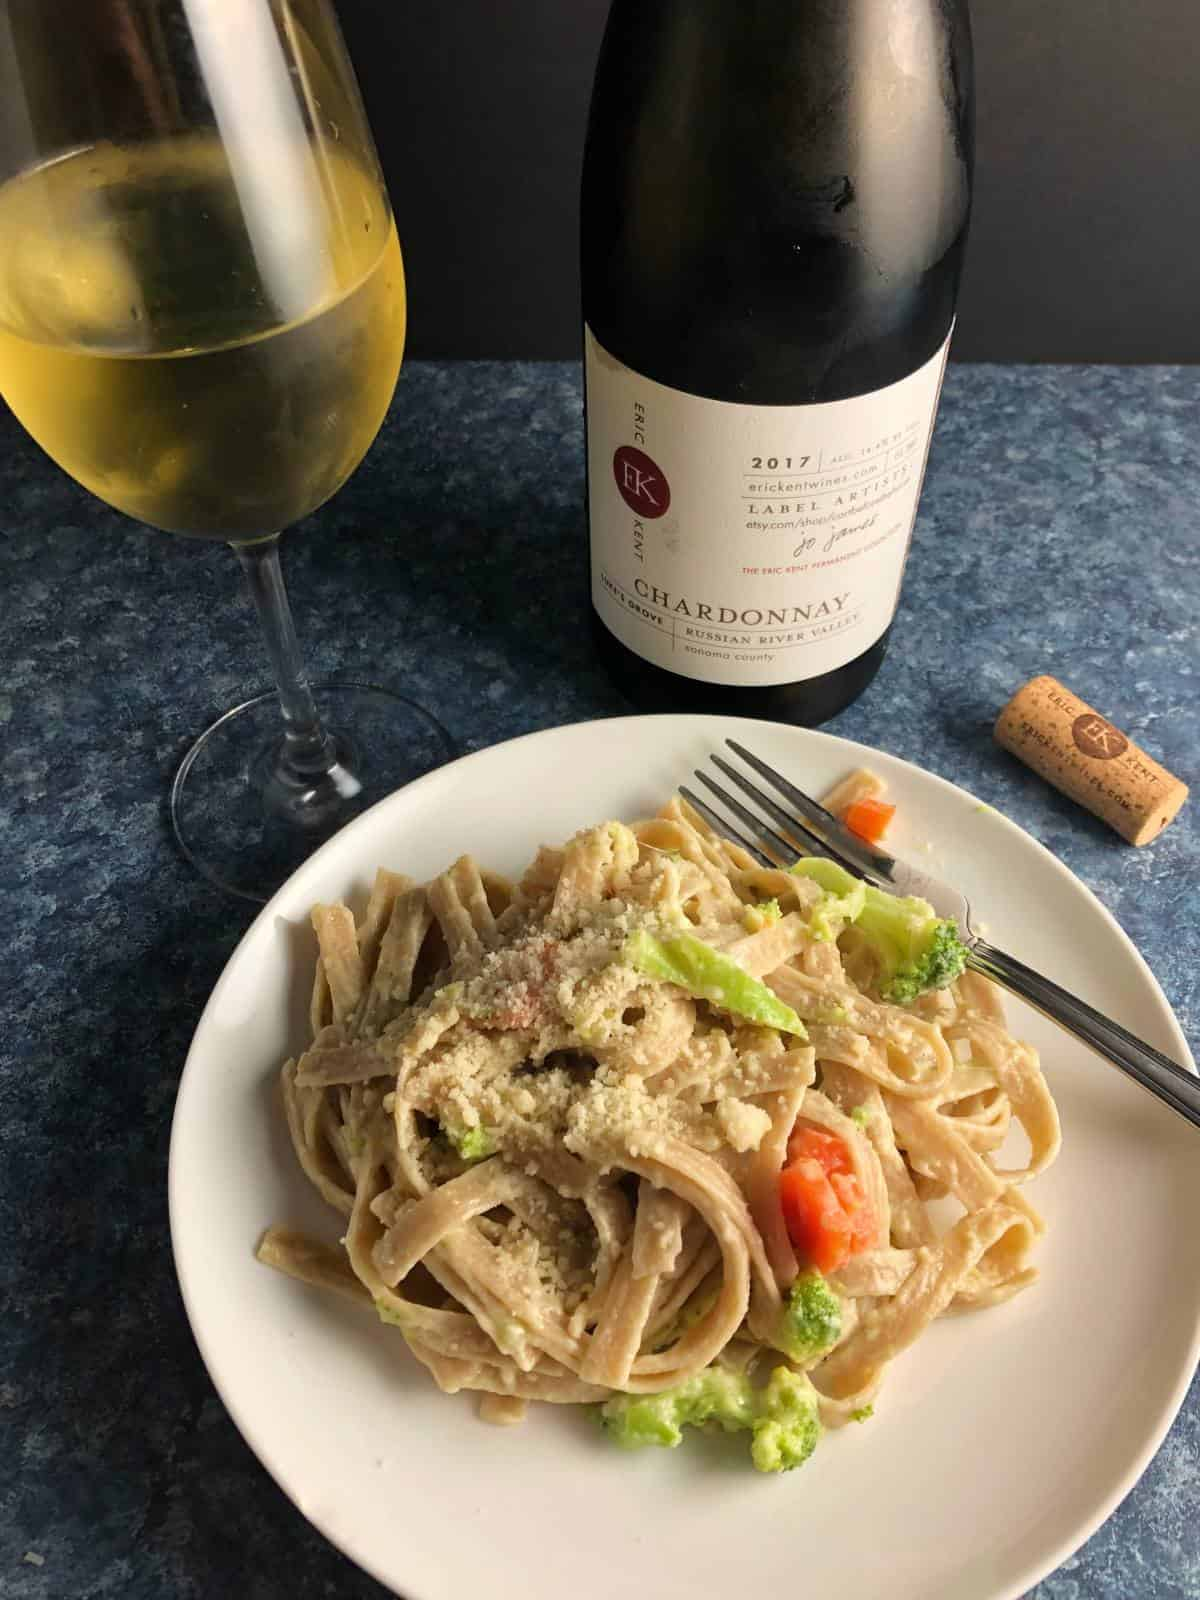 fettuccine primavera paired with Chardonnay.